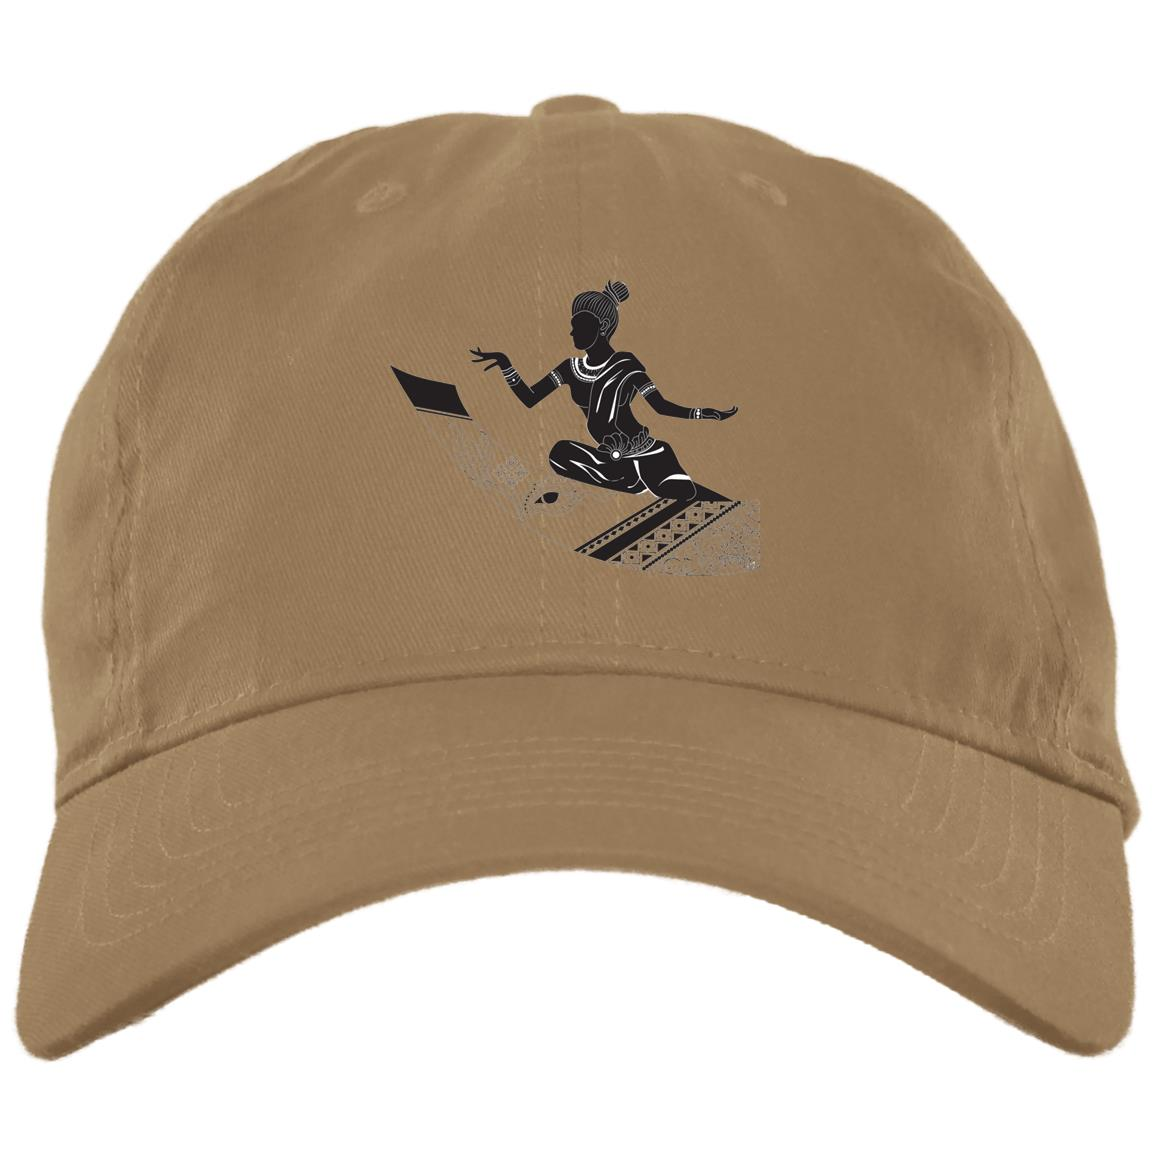 Water festival Cambodia BX001 Brushed Twill Unstructured Dad Cap